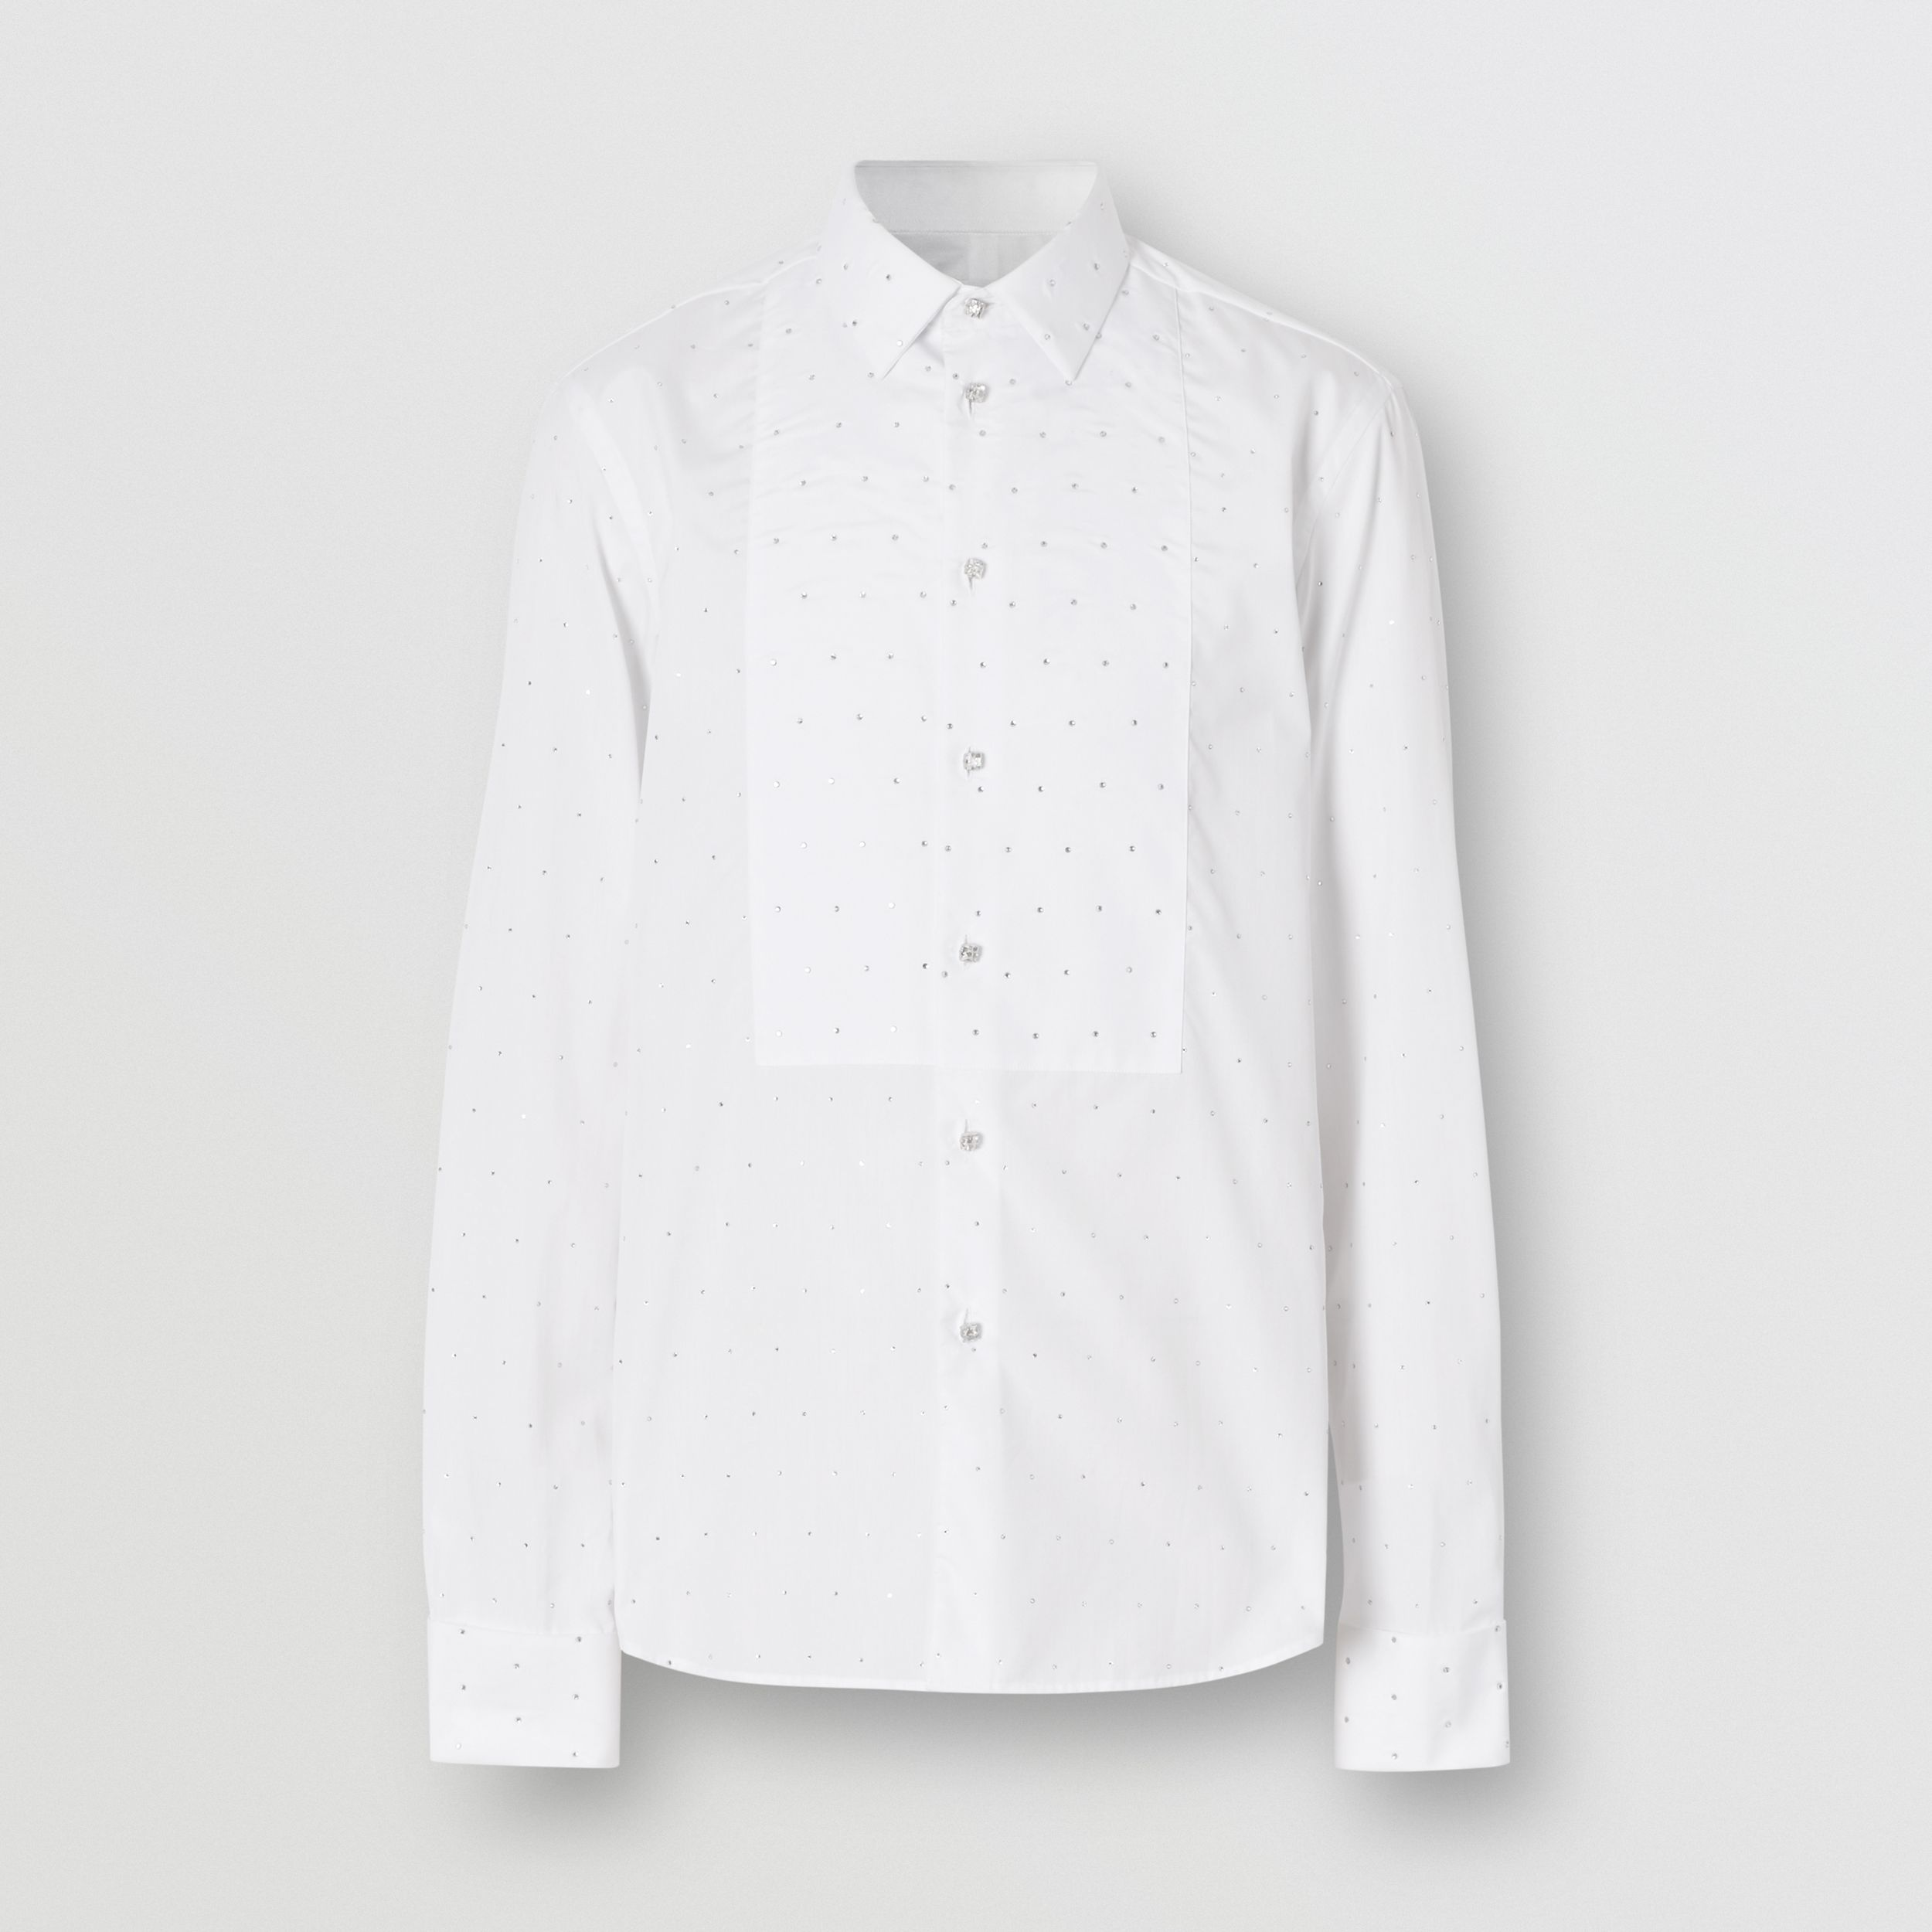 Embellished Cotton Poplin Dress Shirt in Optic White - Men | Burberry Hong Kong S.A.R. - 4